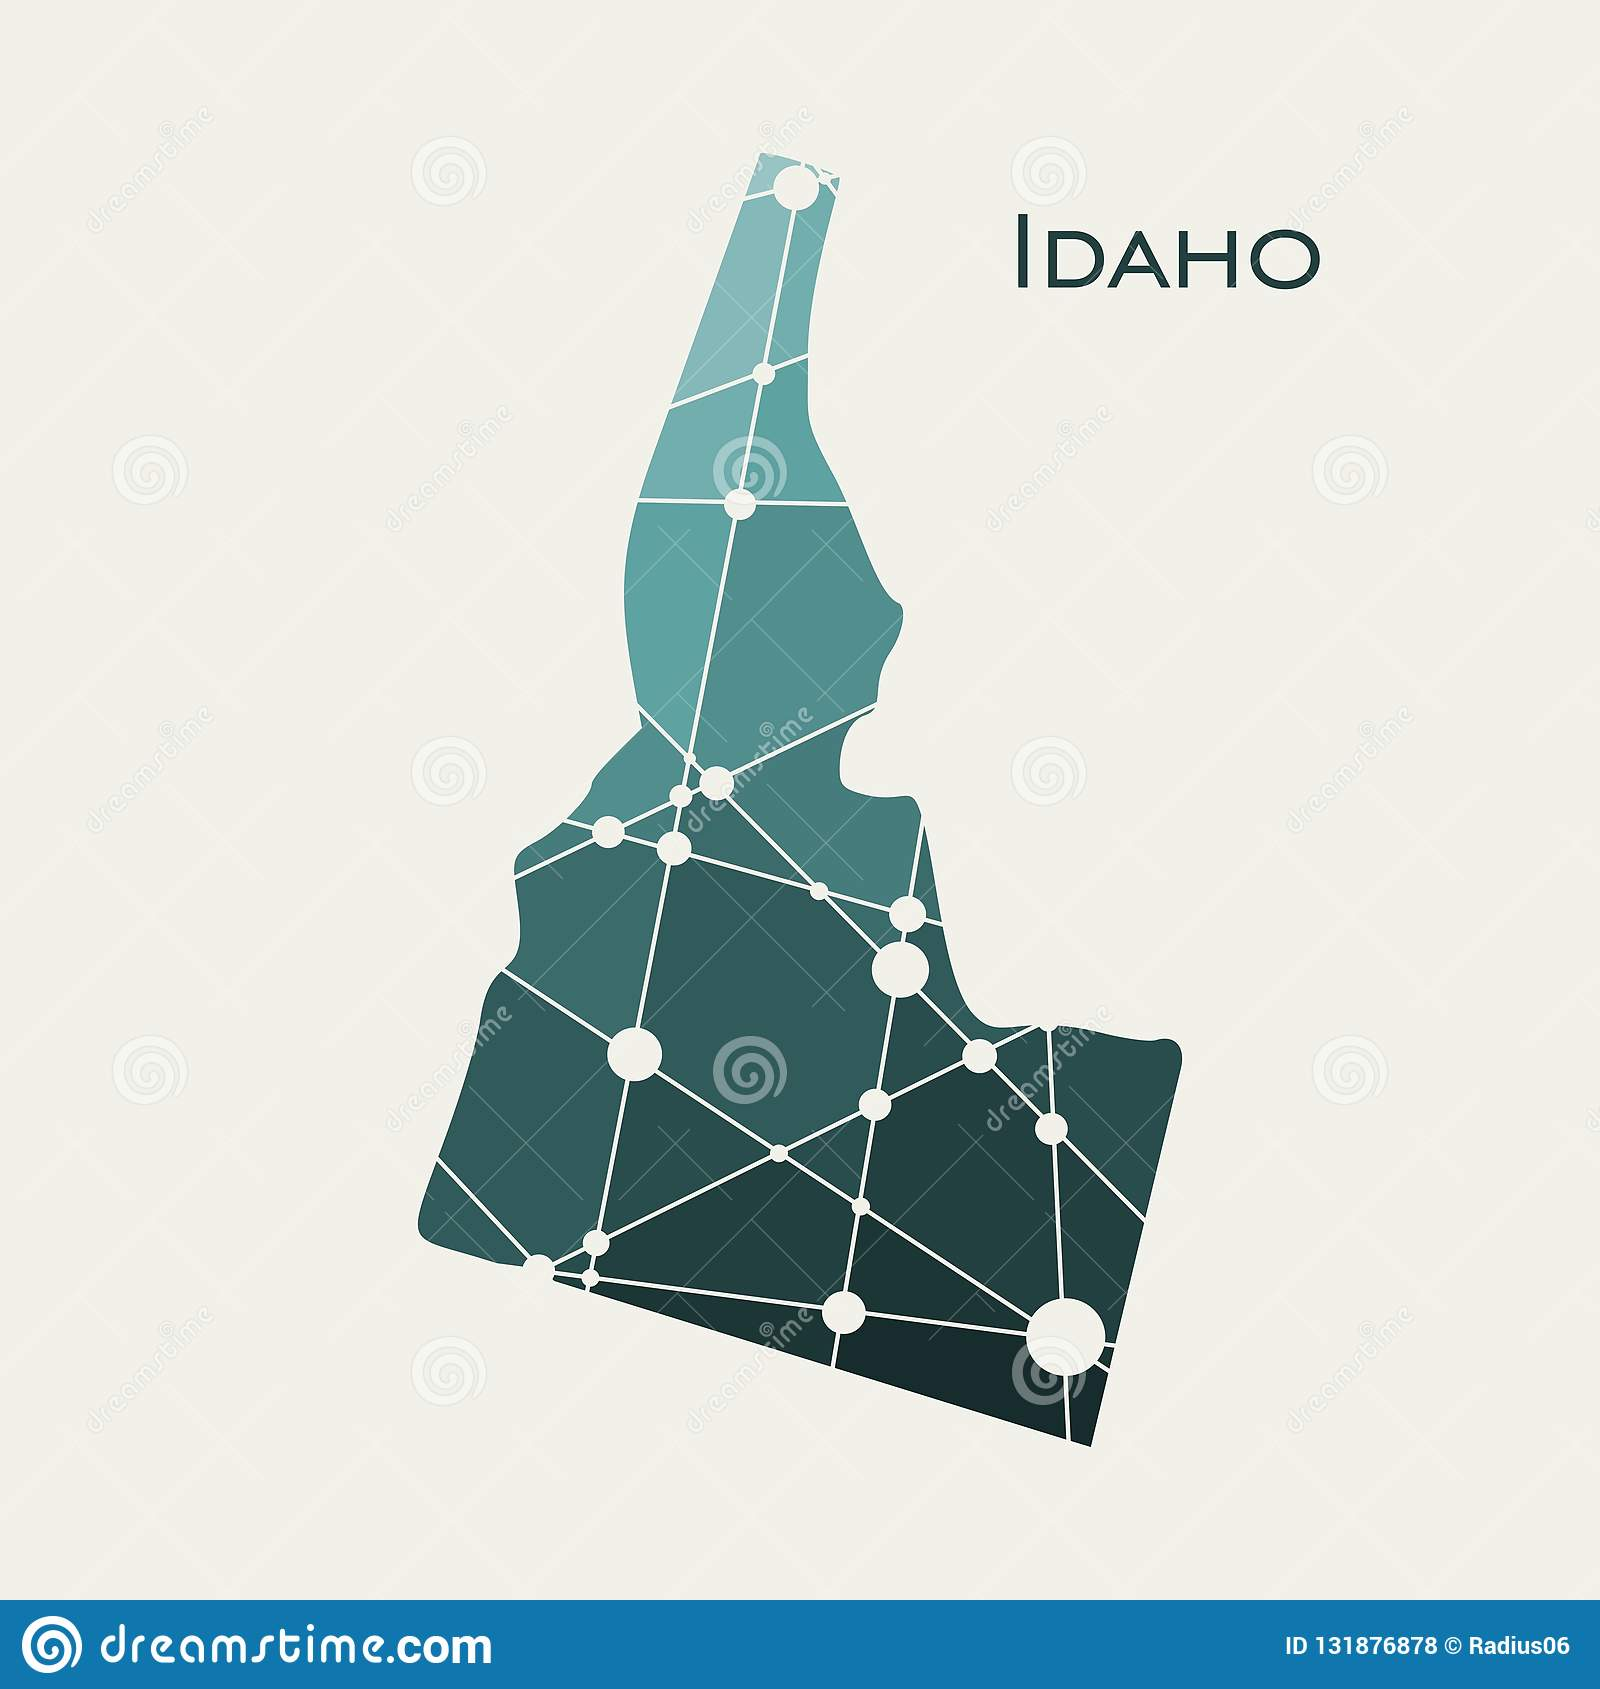 Idaho state map stock vector. Illustration of poly, regions - 131876878